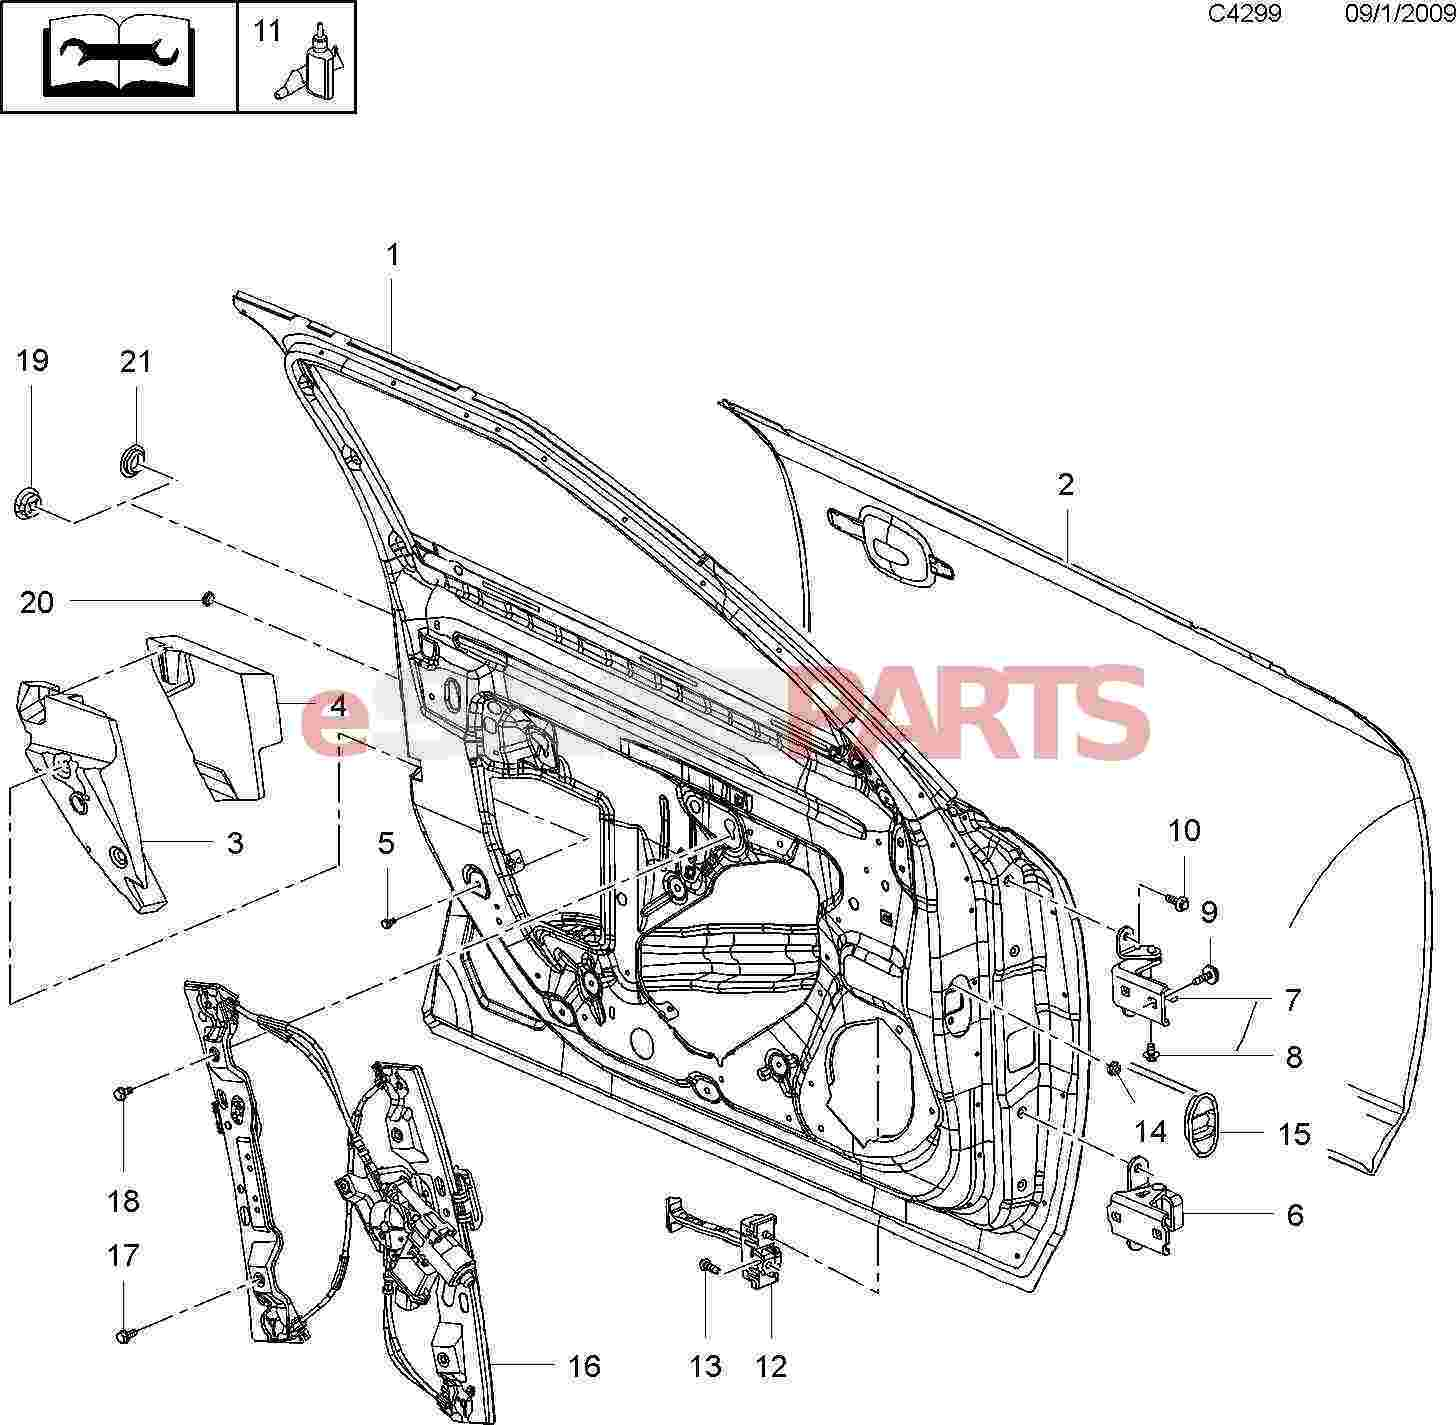 2003 Mitsubishi Eclipse Car Stereo Wiring Diagram